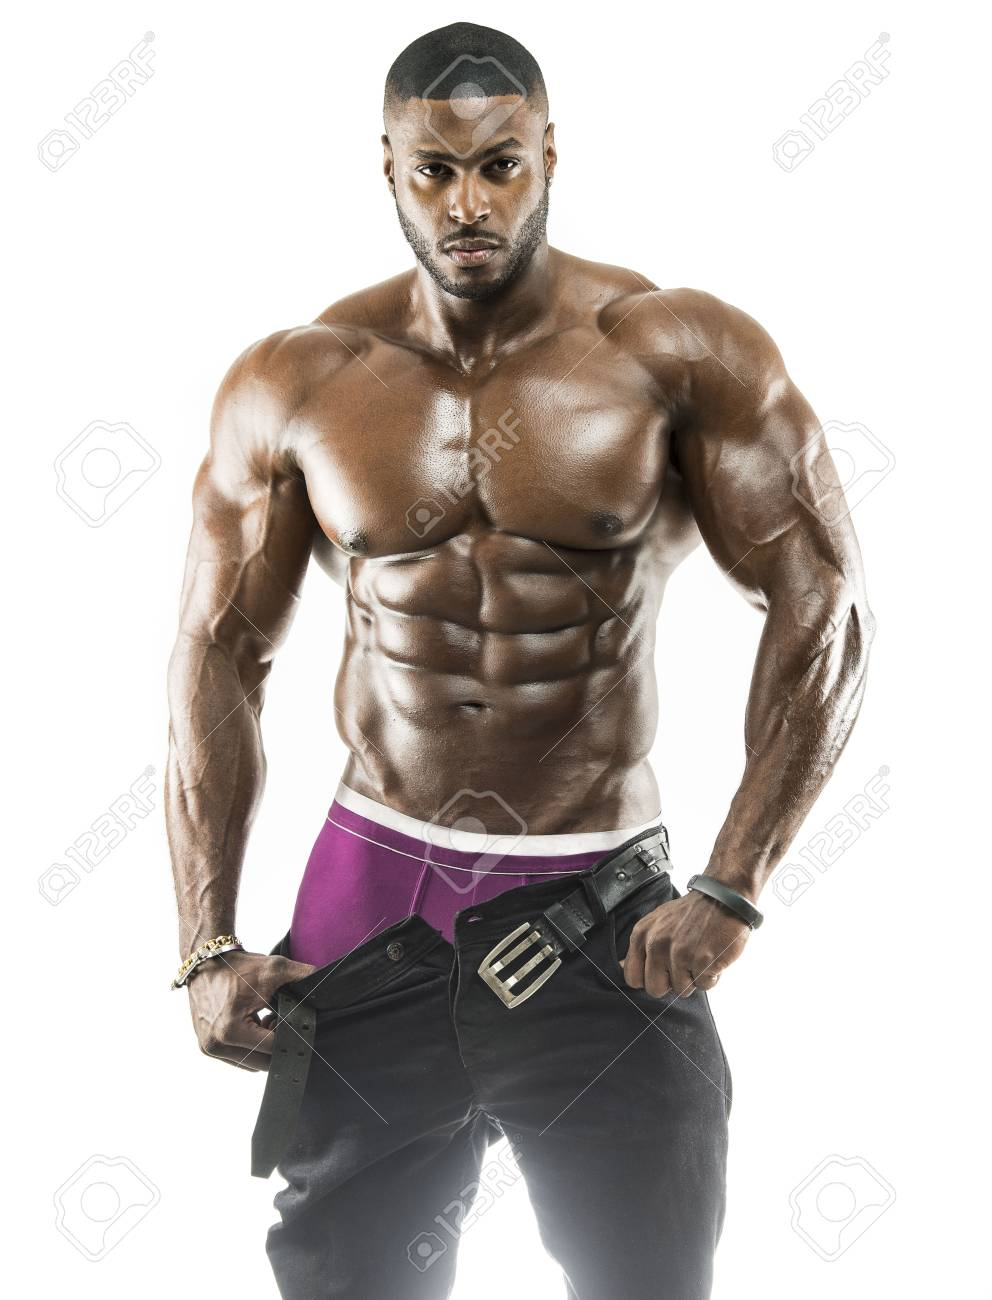 Handsome muscular Arabic Black man removing his pants showing abs and black under wear with oiled body - 99202286